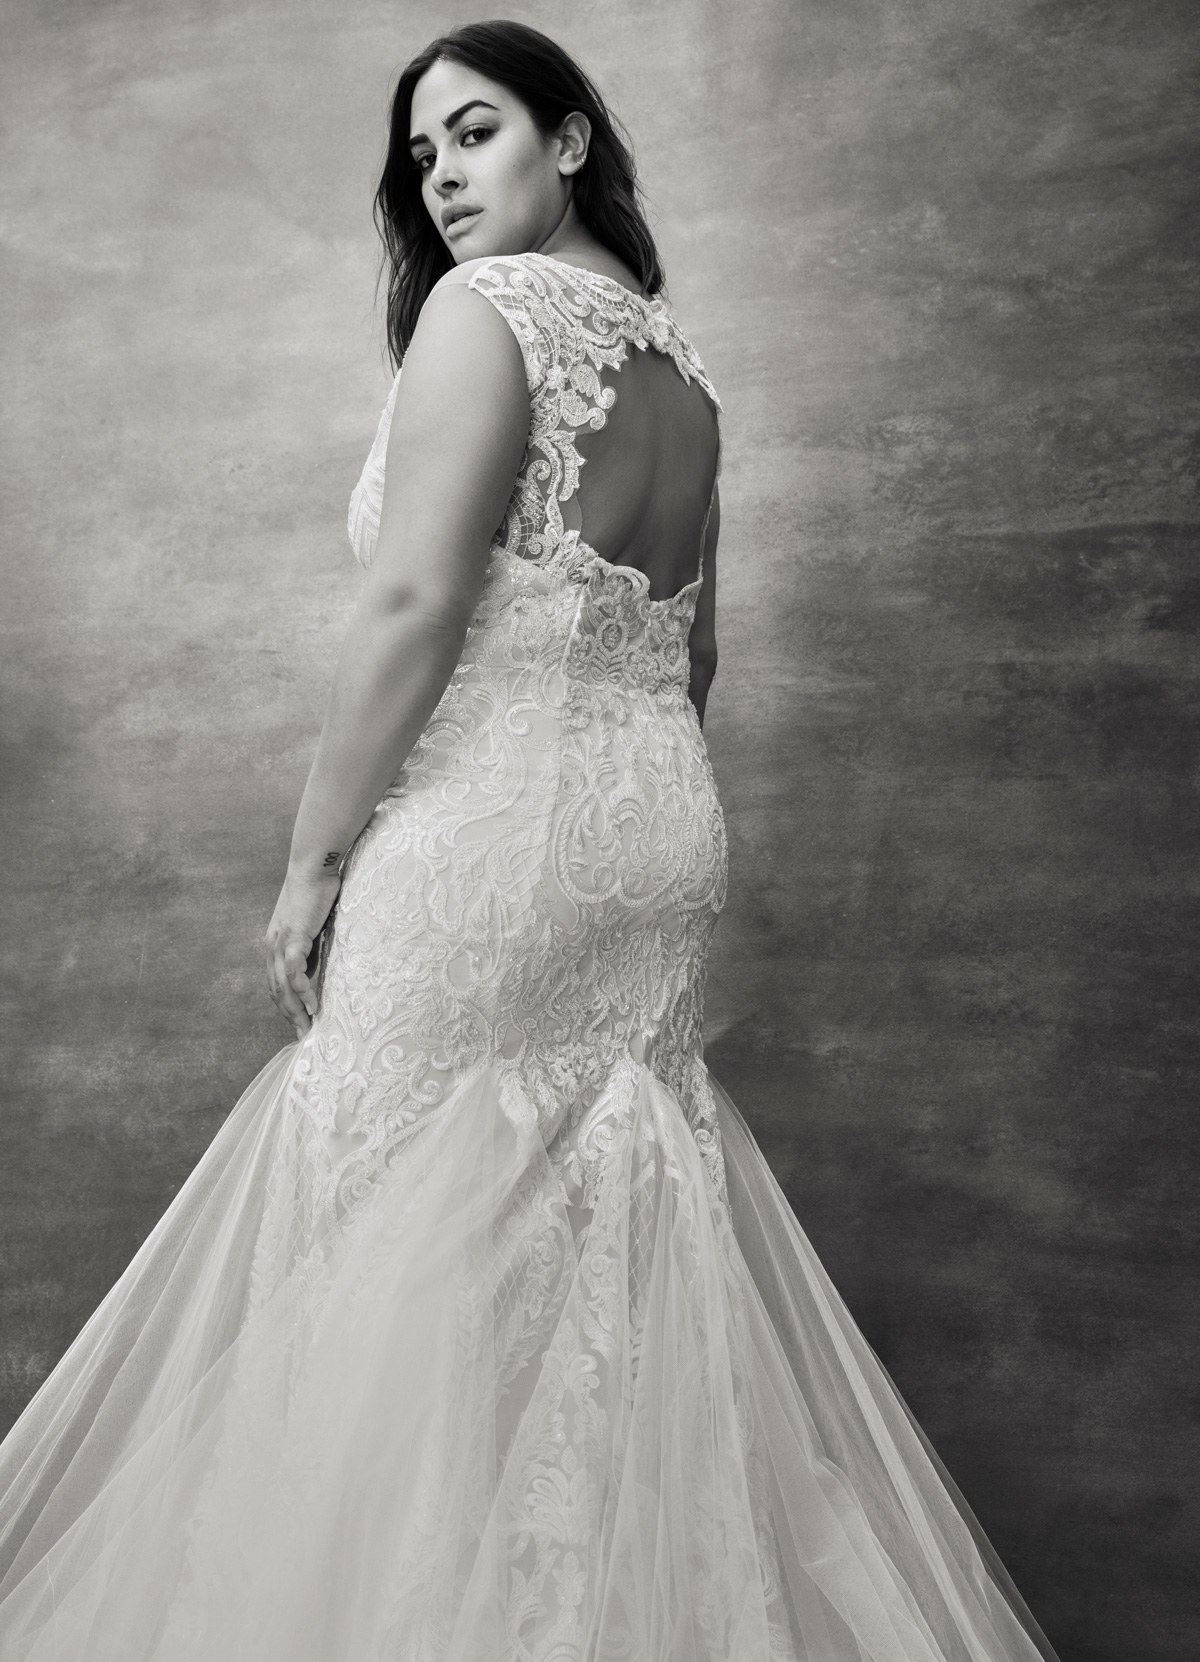 1a36546df9f Floravere Introduces Wedding Dress Samples in Sizes 2 Through 24 ...